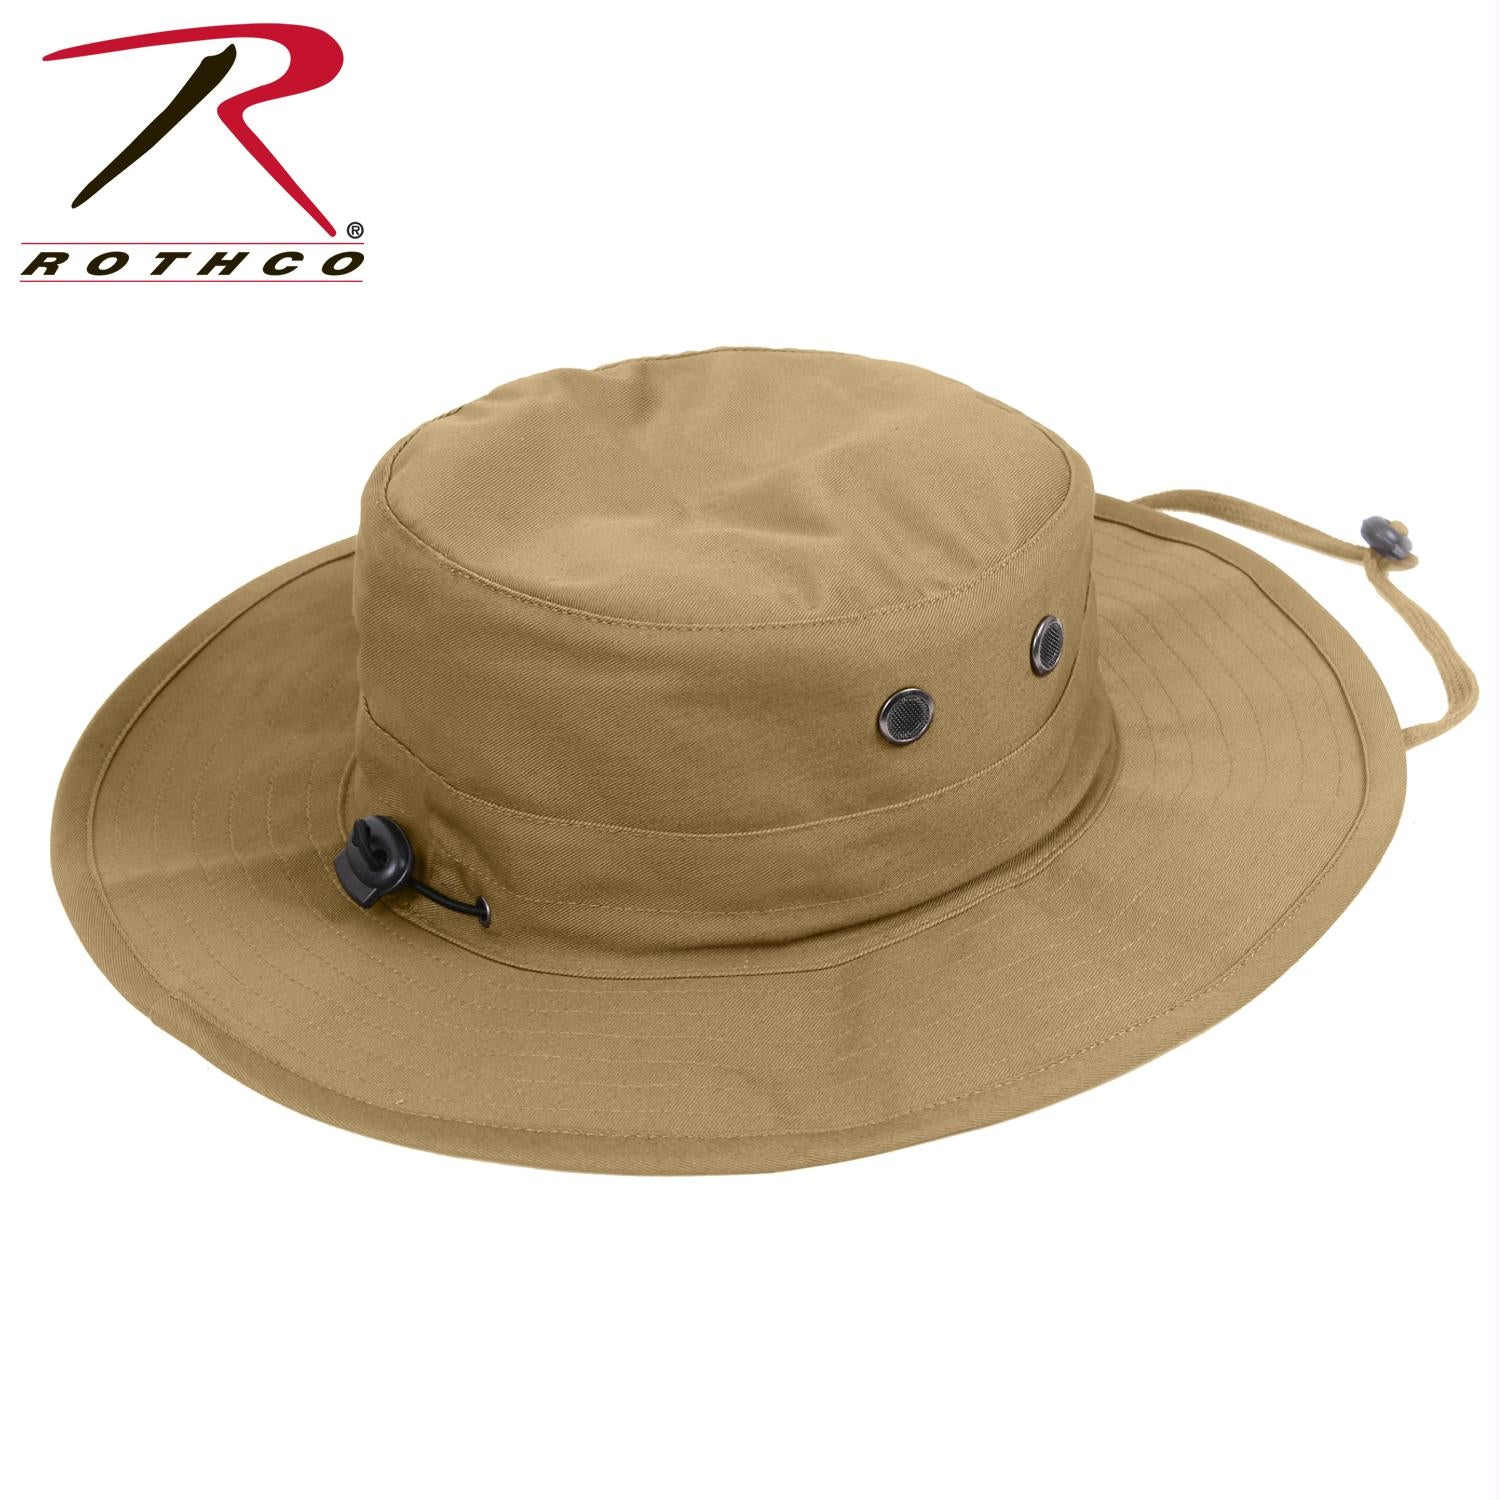 Rothco Adjustable Boonie Hat - Coyote Brown / One Size